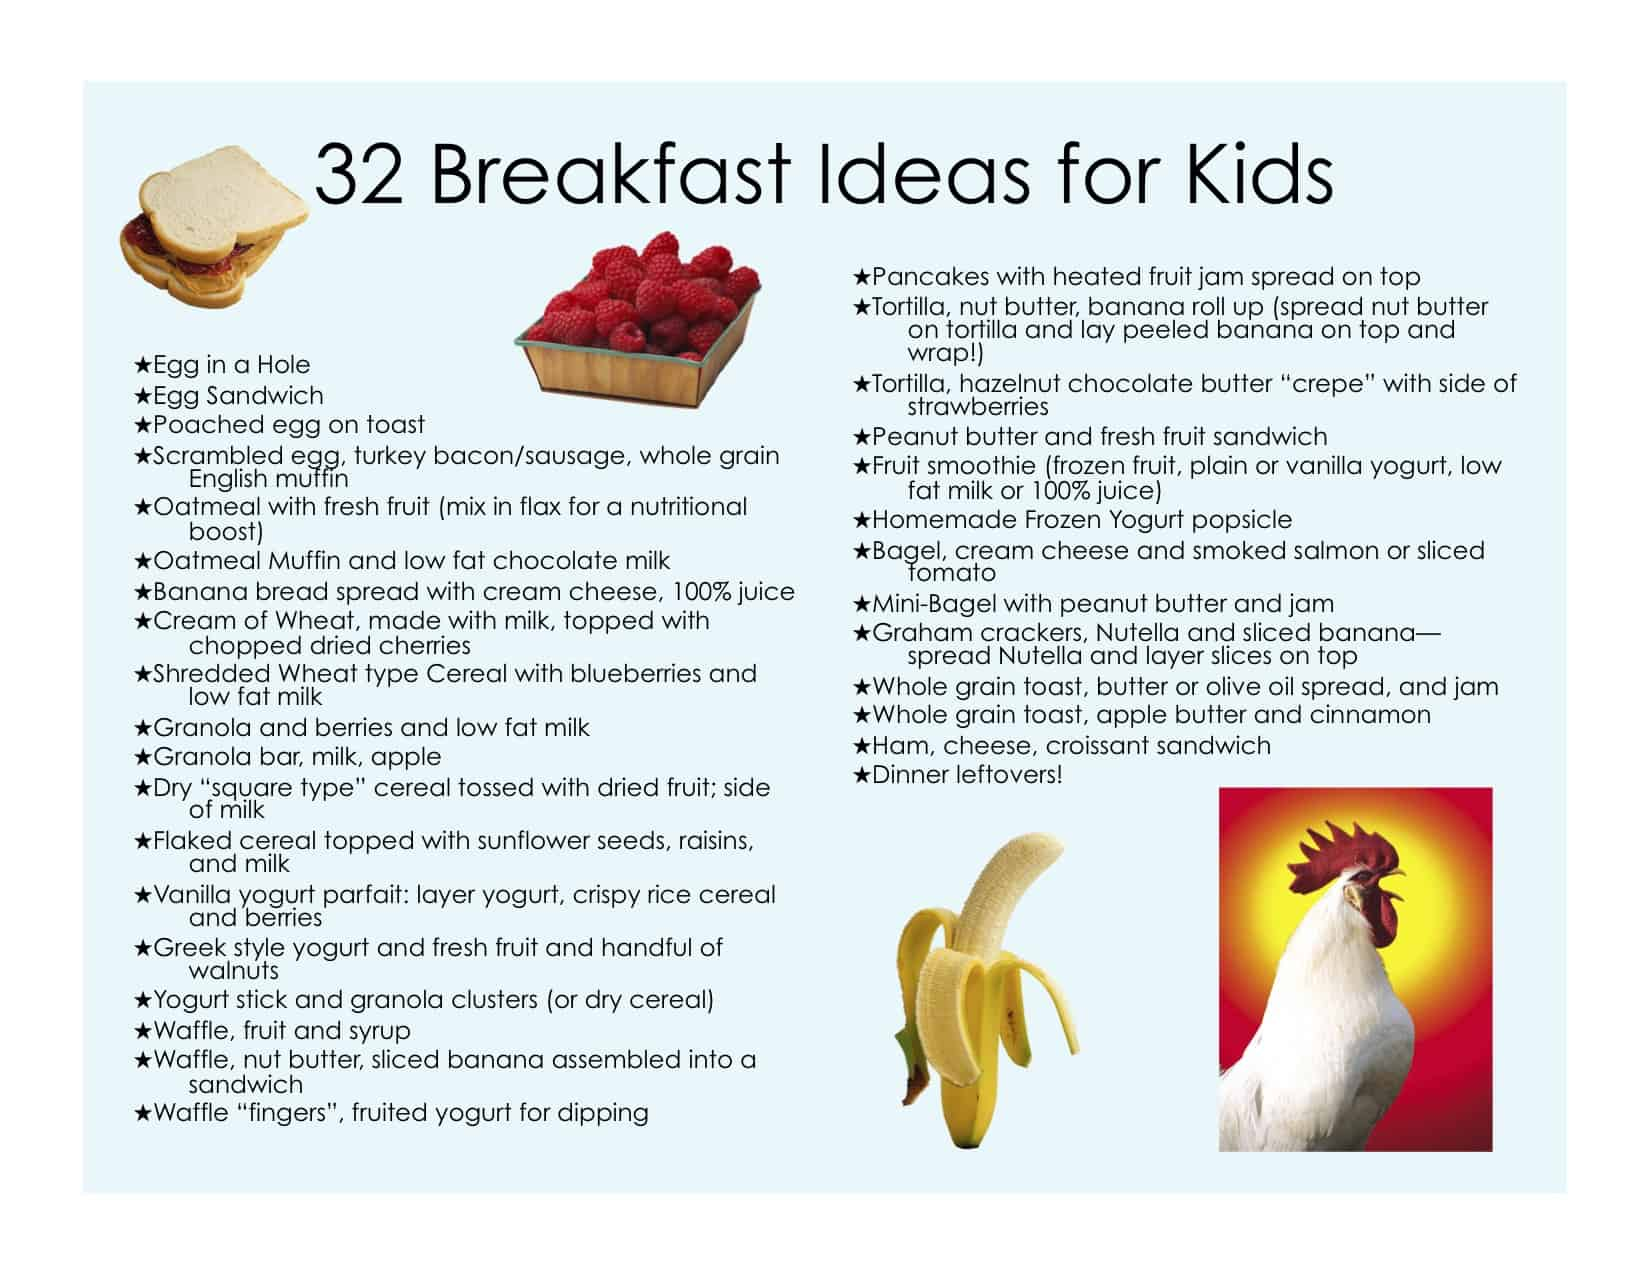 Healthy Breakfast Ideas for Kids. Almond Butter & Raspberry Jam Open Faced Sammie is a fun way to serve up breakfast. Toast two pieces of gluten-free whole grain toast and .